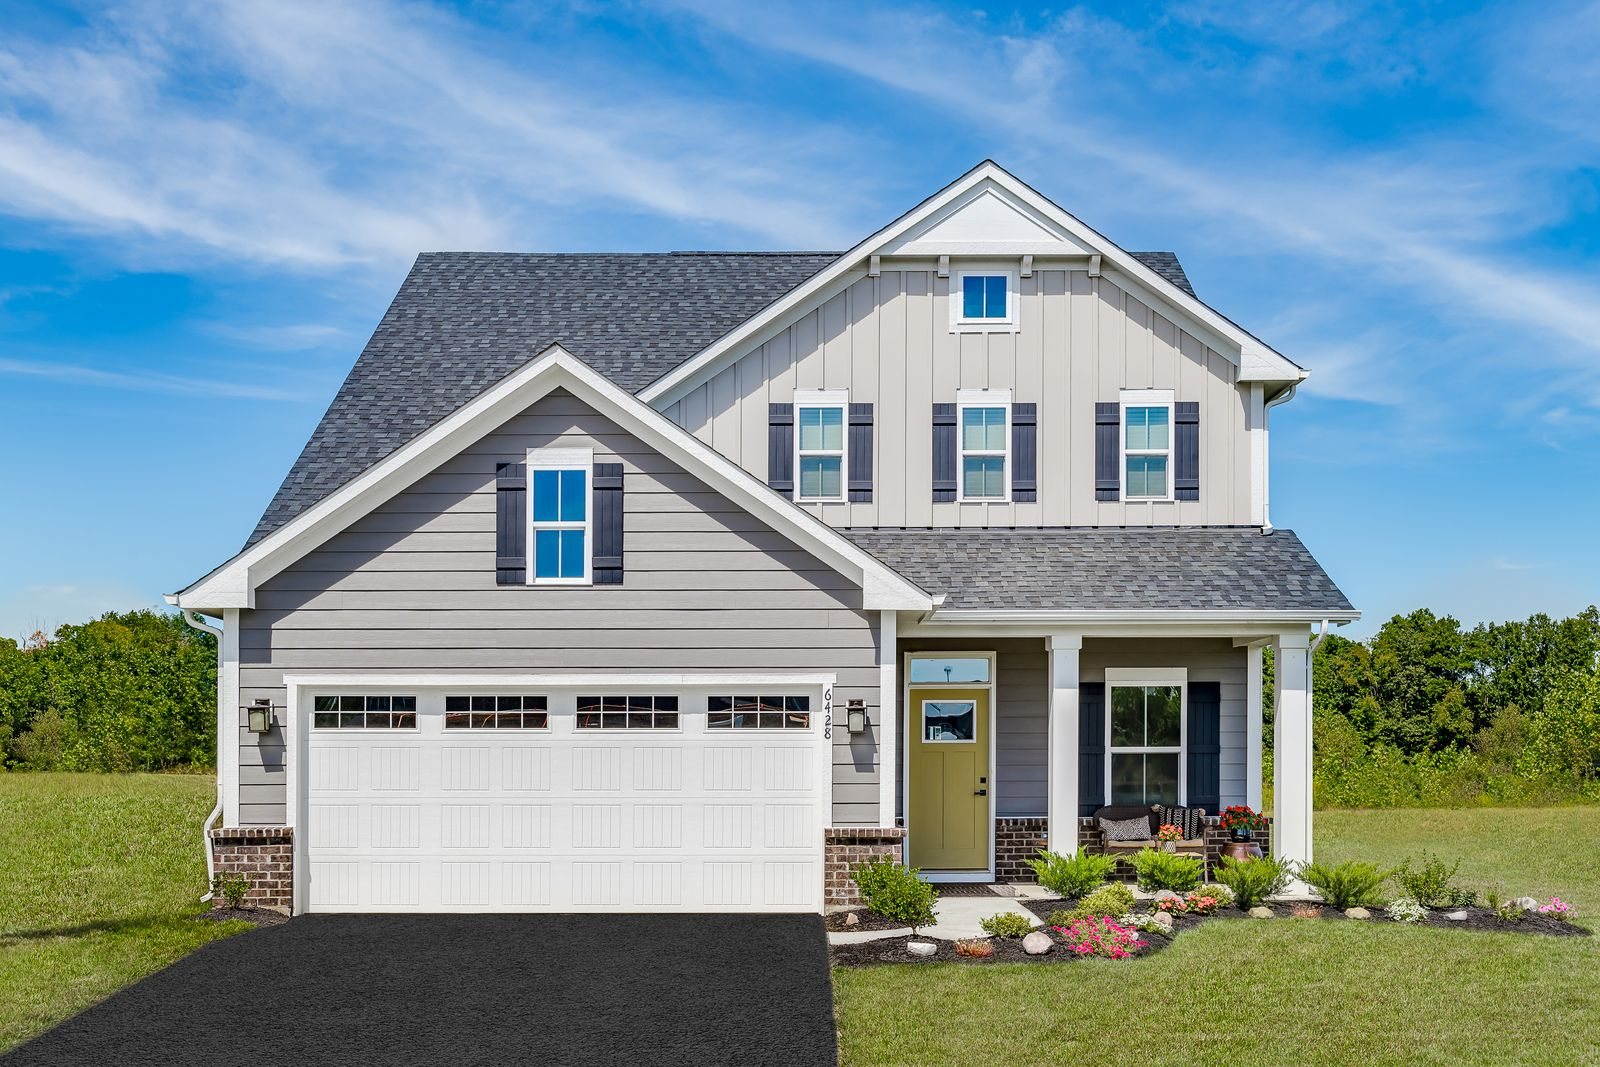 Welcome Home to Bethel Pines:The only new homes in Bethel Park Schools, with just 19 homes. Minutes to T-Station, Cool Springs, & shopping.Click hereto sign up for the Grand Opening of Bethel Pines.